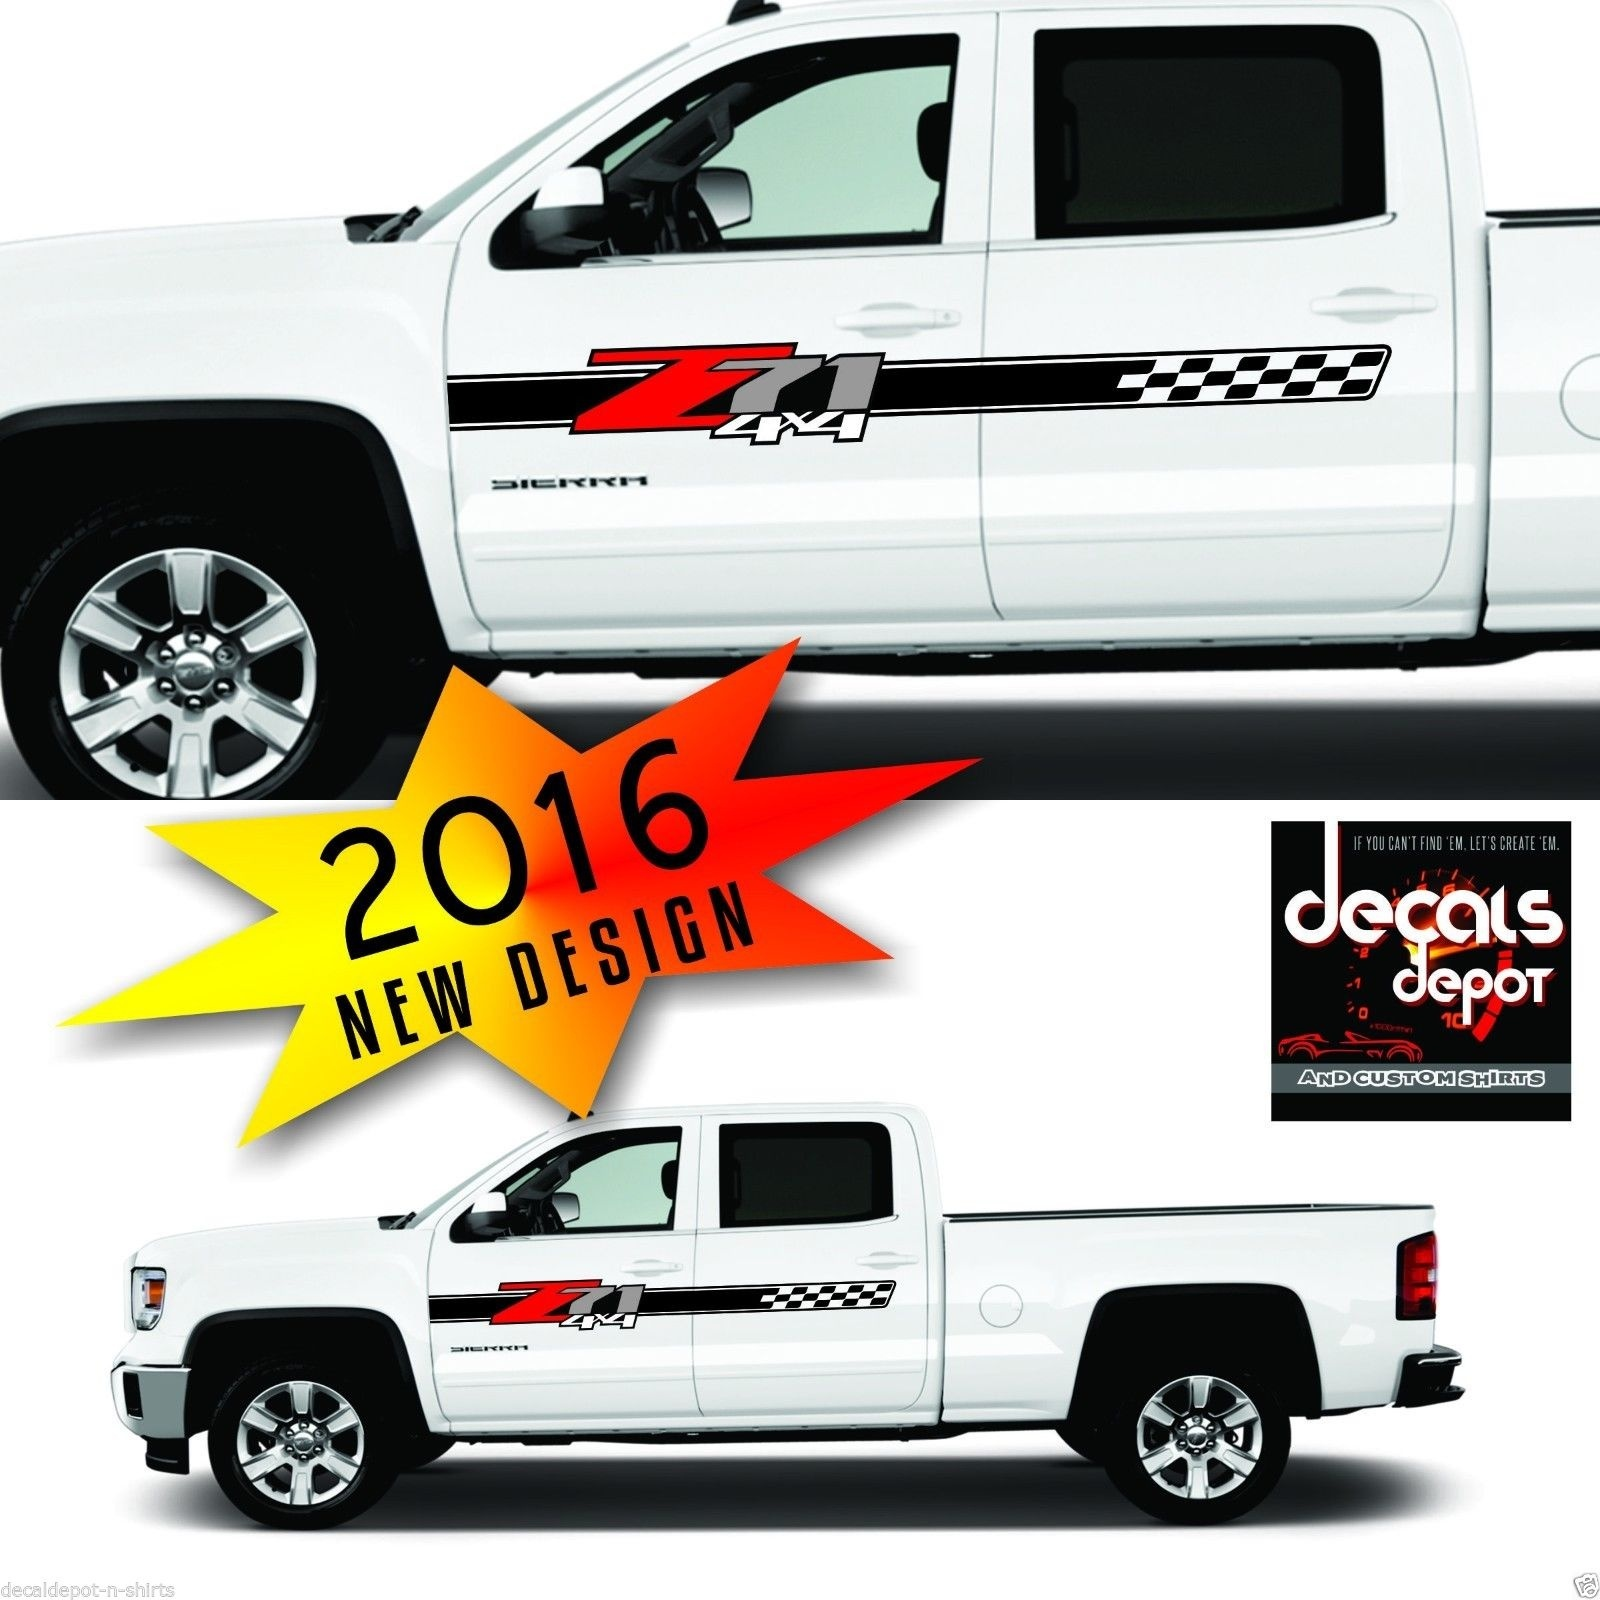 4x4 Mud Tracks Truck Bed Decal Dodge Ram 1500 Chevy Ford Sticker Stripe Vinyl 0 Auto Parts Accessories Car Truck Parts